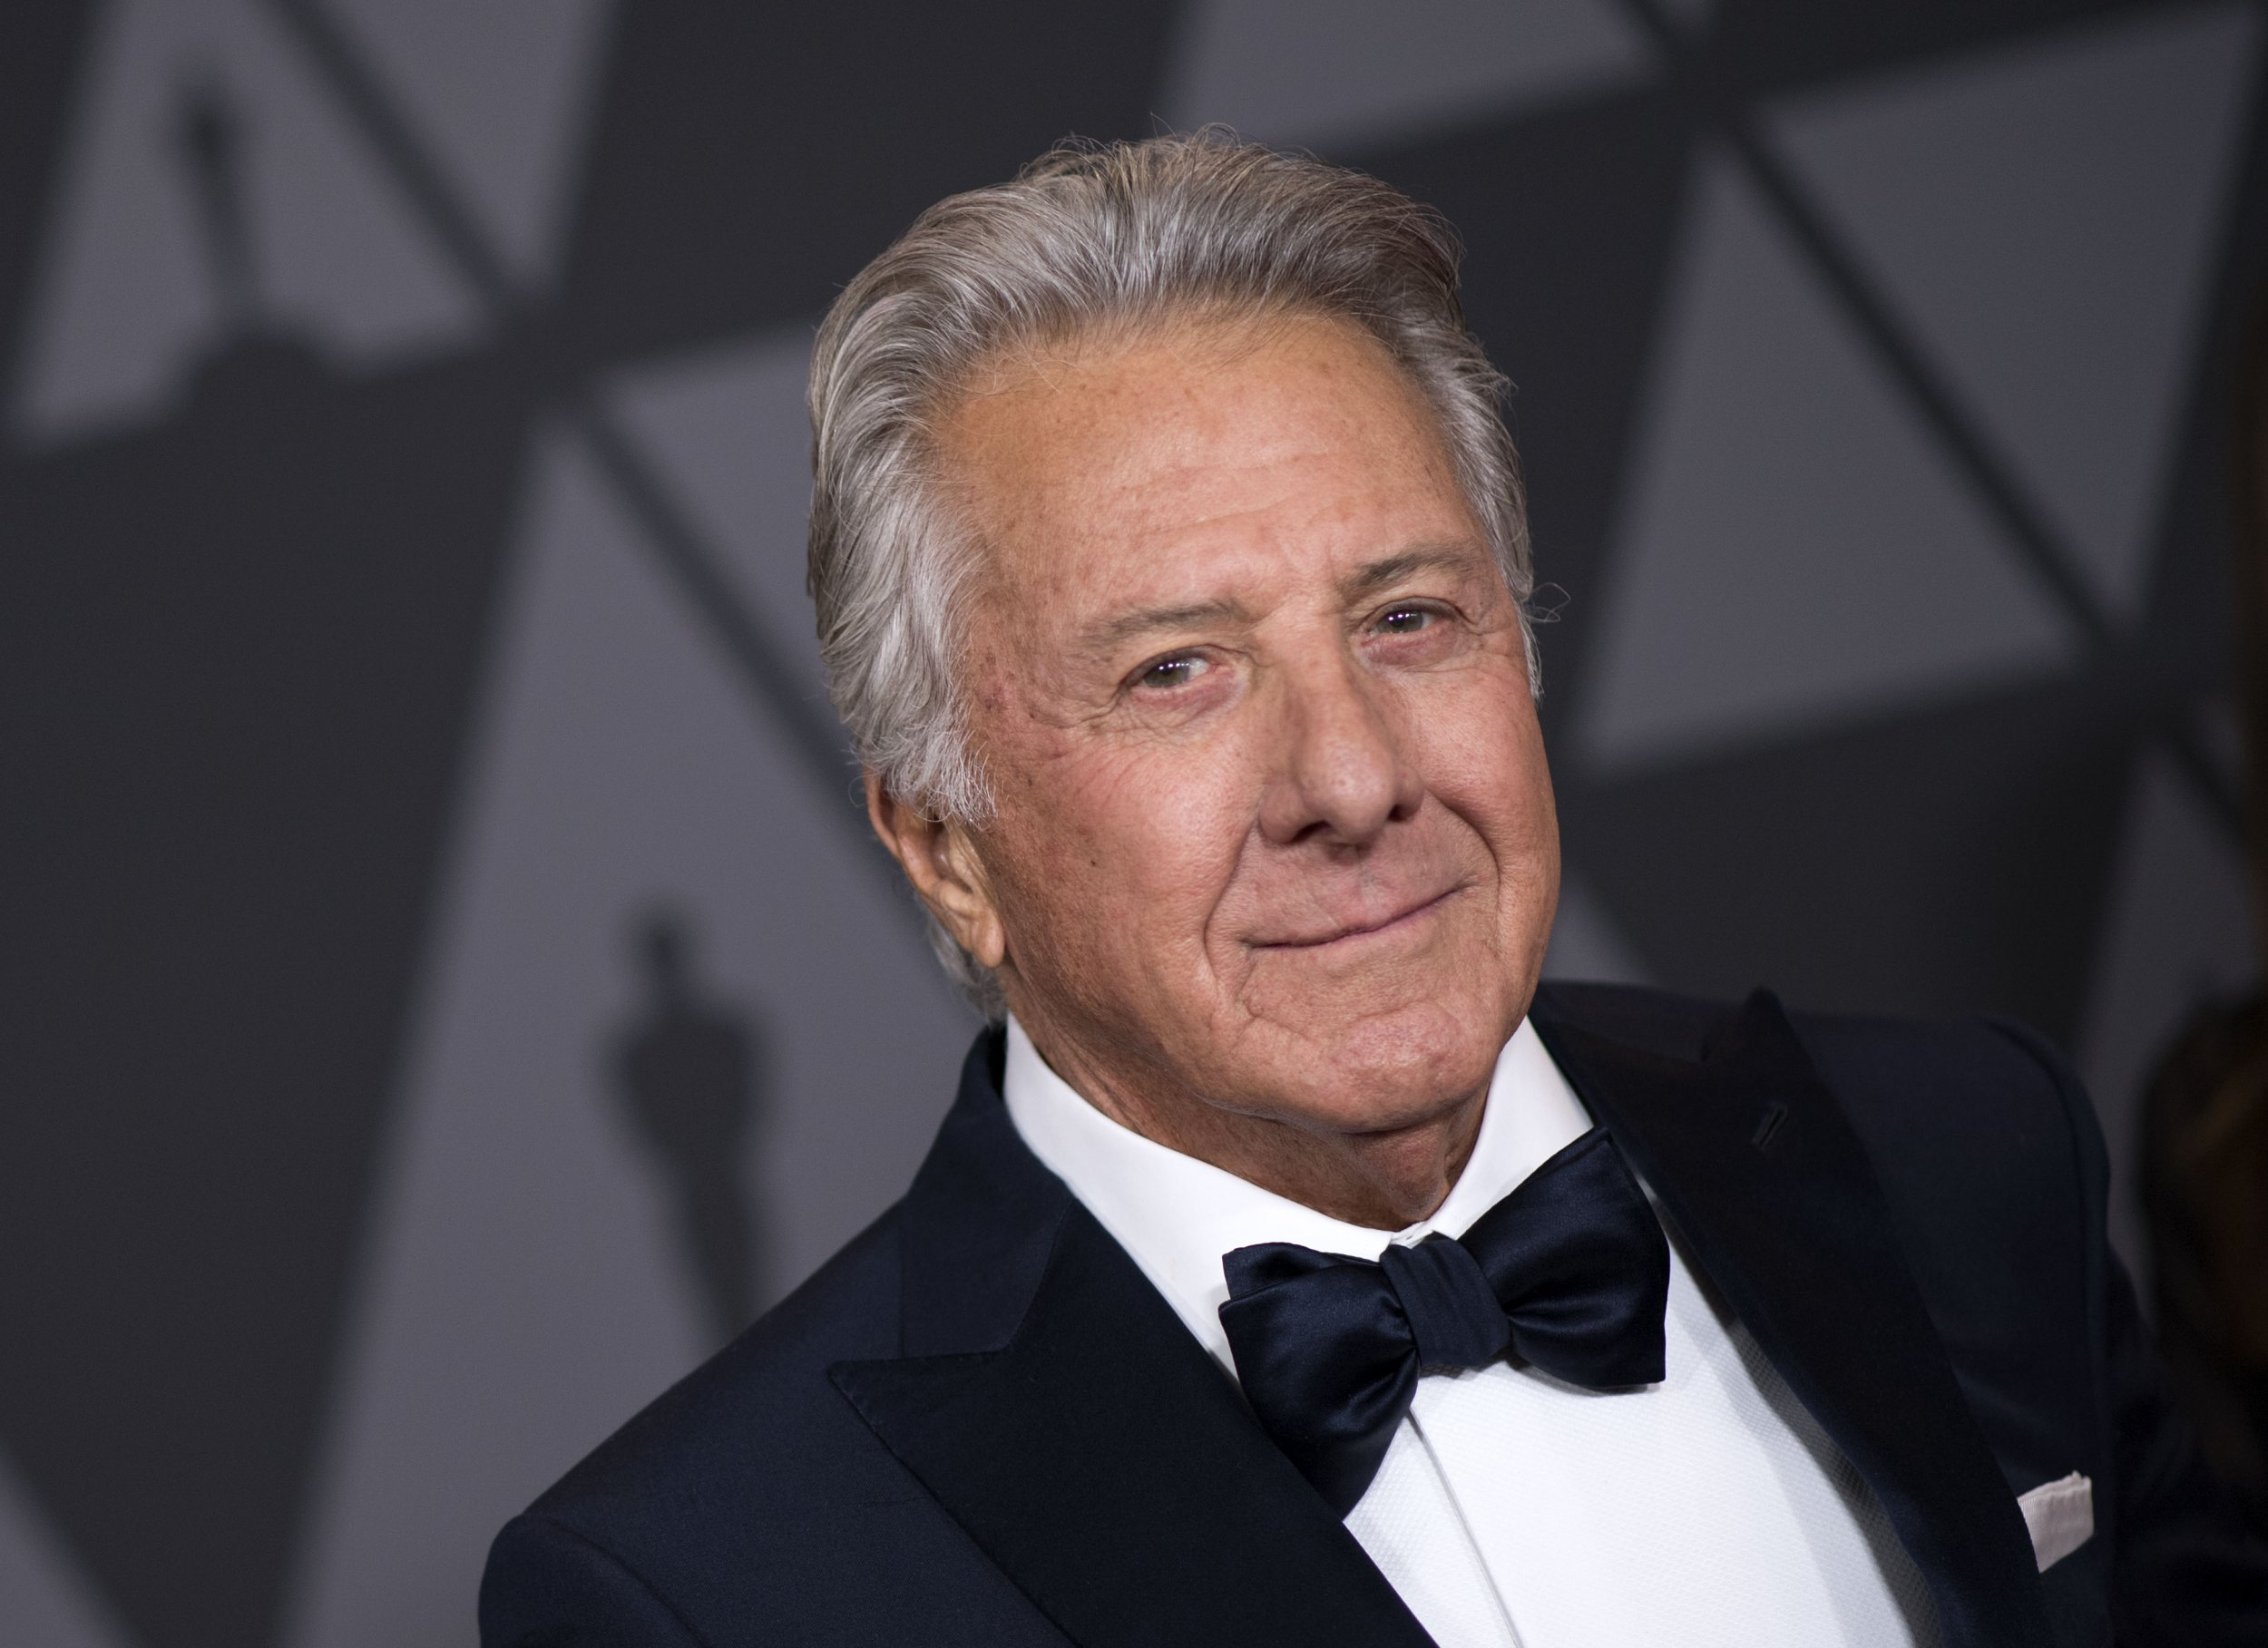 Kathryn Rossetter Dustin Hoffman >> Who is Kathryn Rossetter? Actress Alleges Dustin Hoffman Sexually Harassed Her in 1985